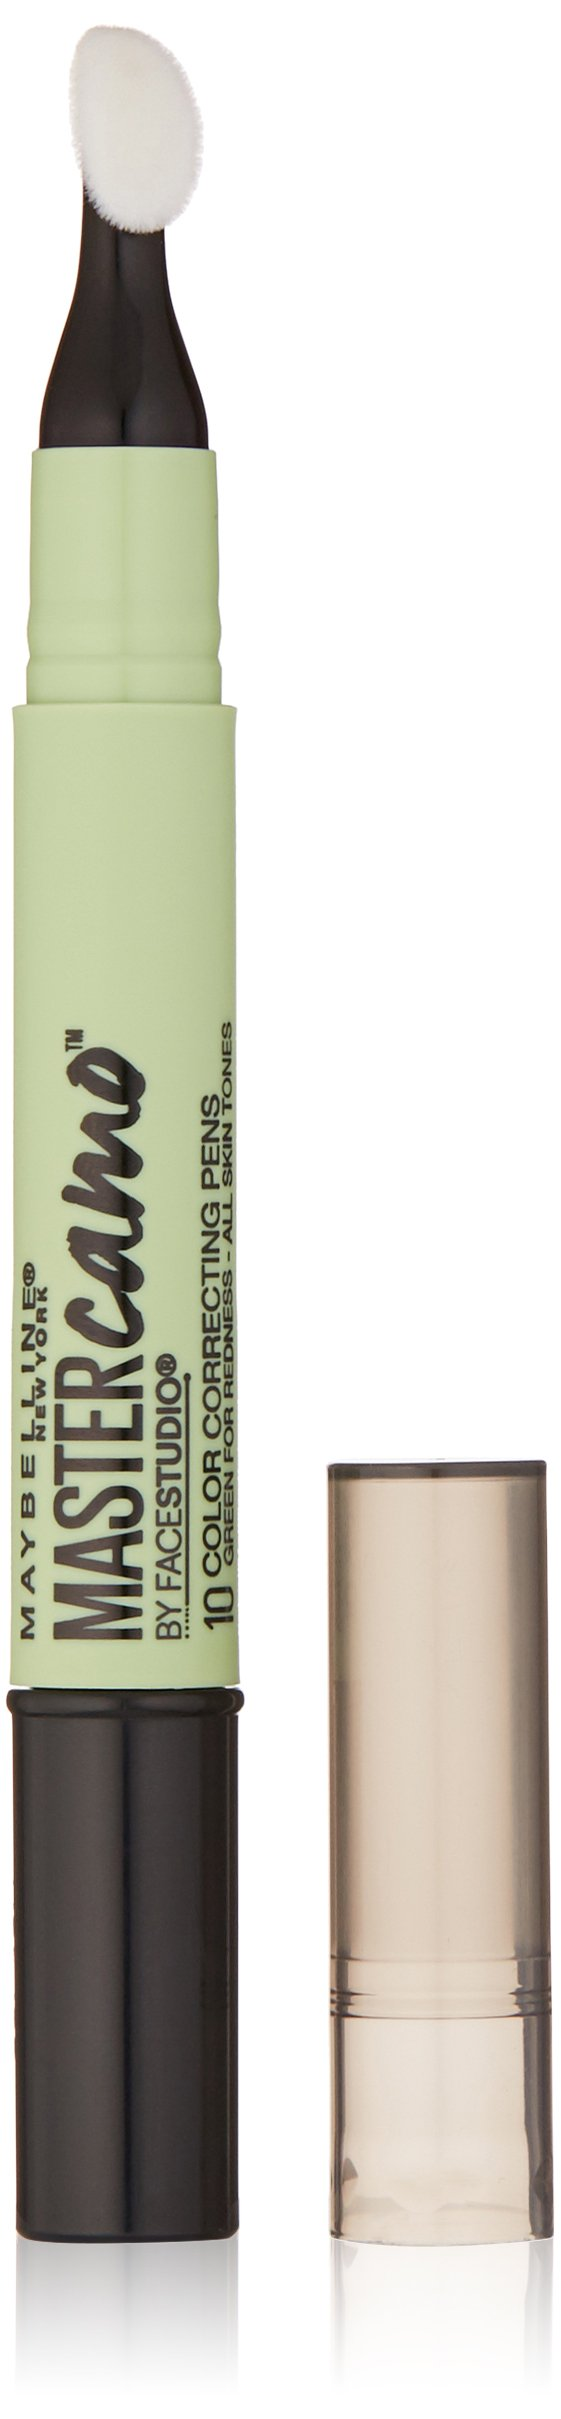 Maybelline New York Master Camo Color Correcting Pen, Green For Redness, all, 0.05 fl. oz.